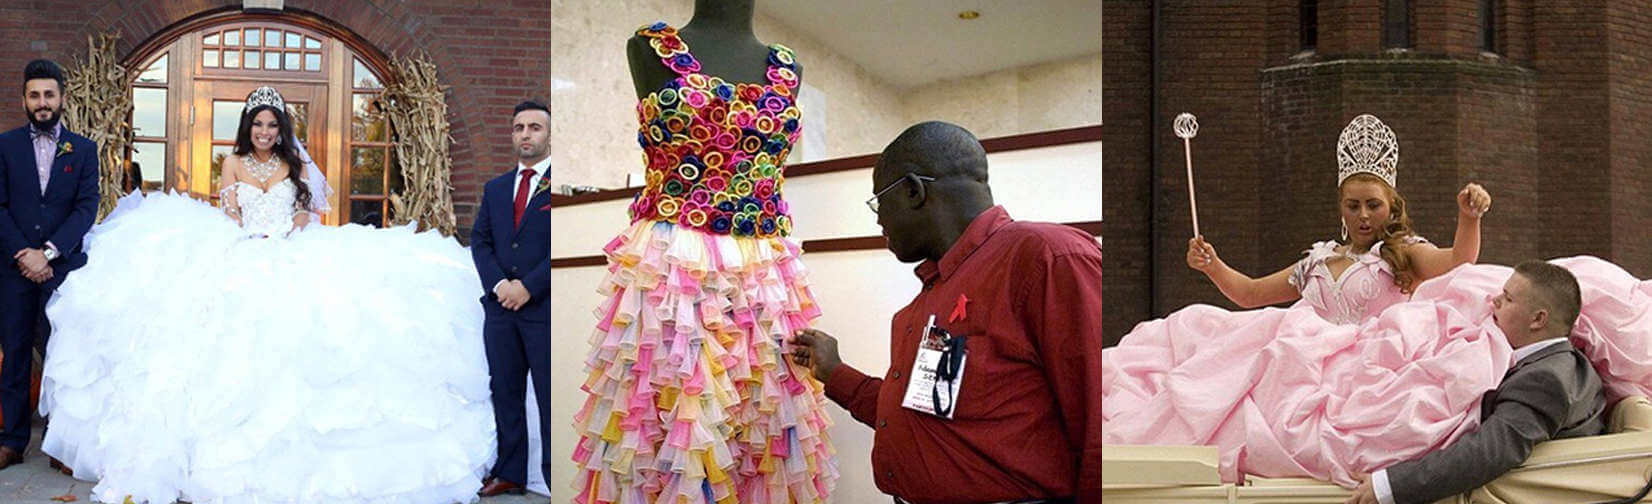 Strange and ridiculous wedding dresses